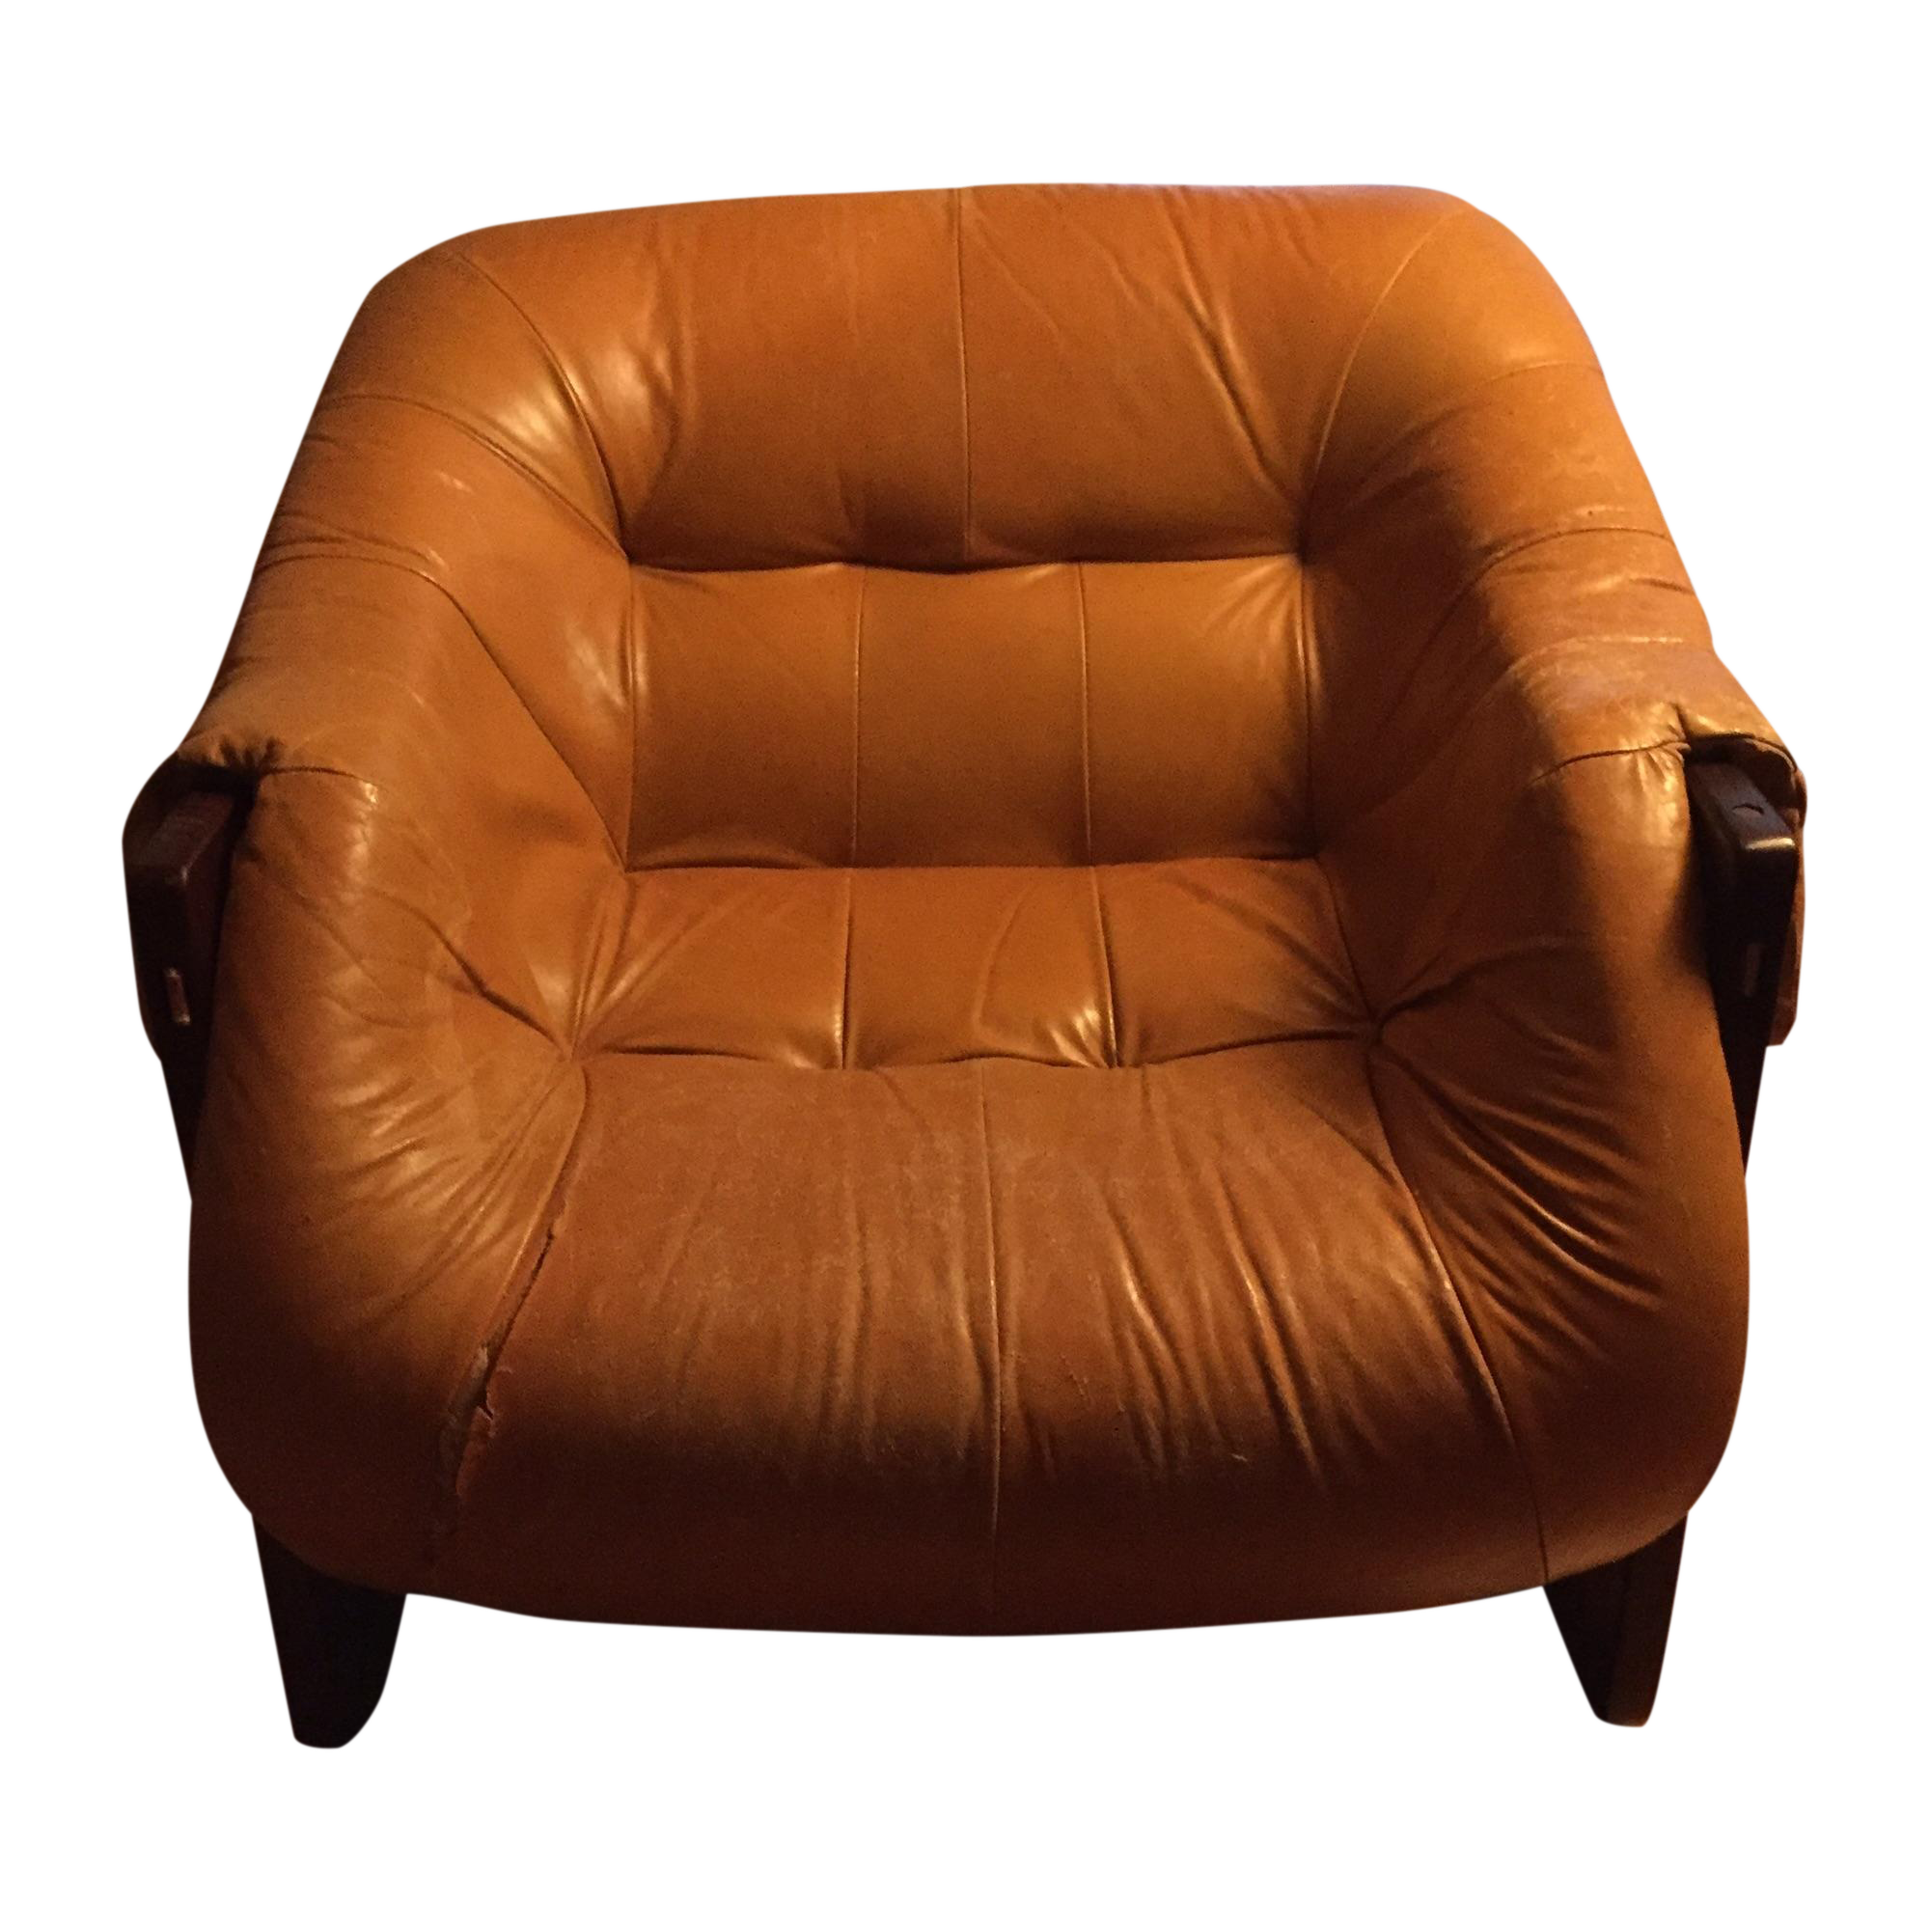 1970s Percival Lafer Chair